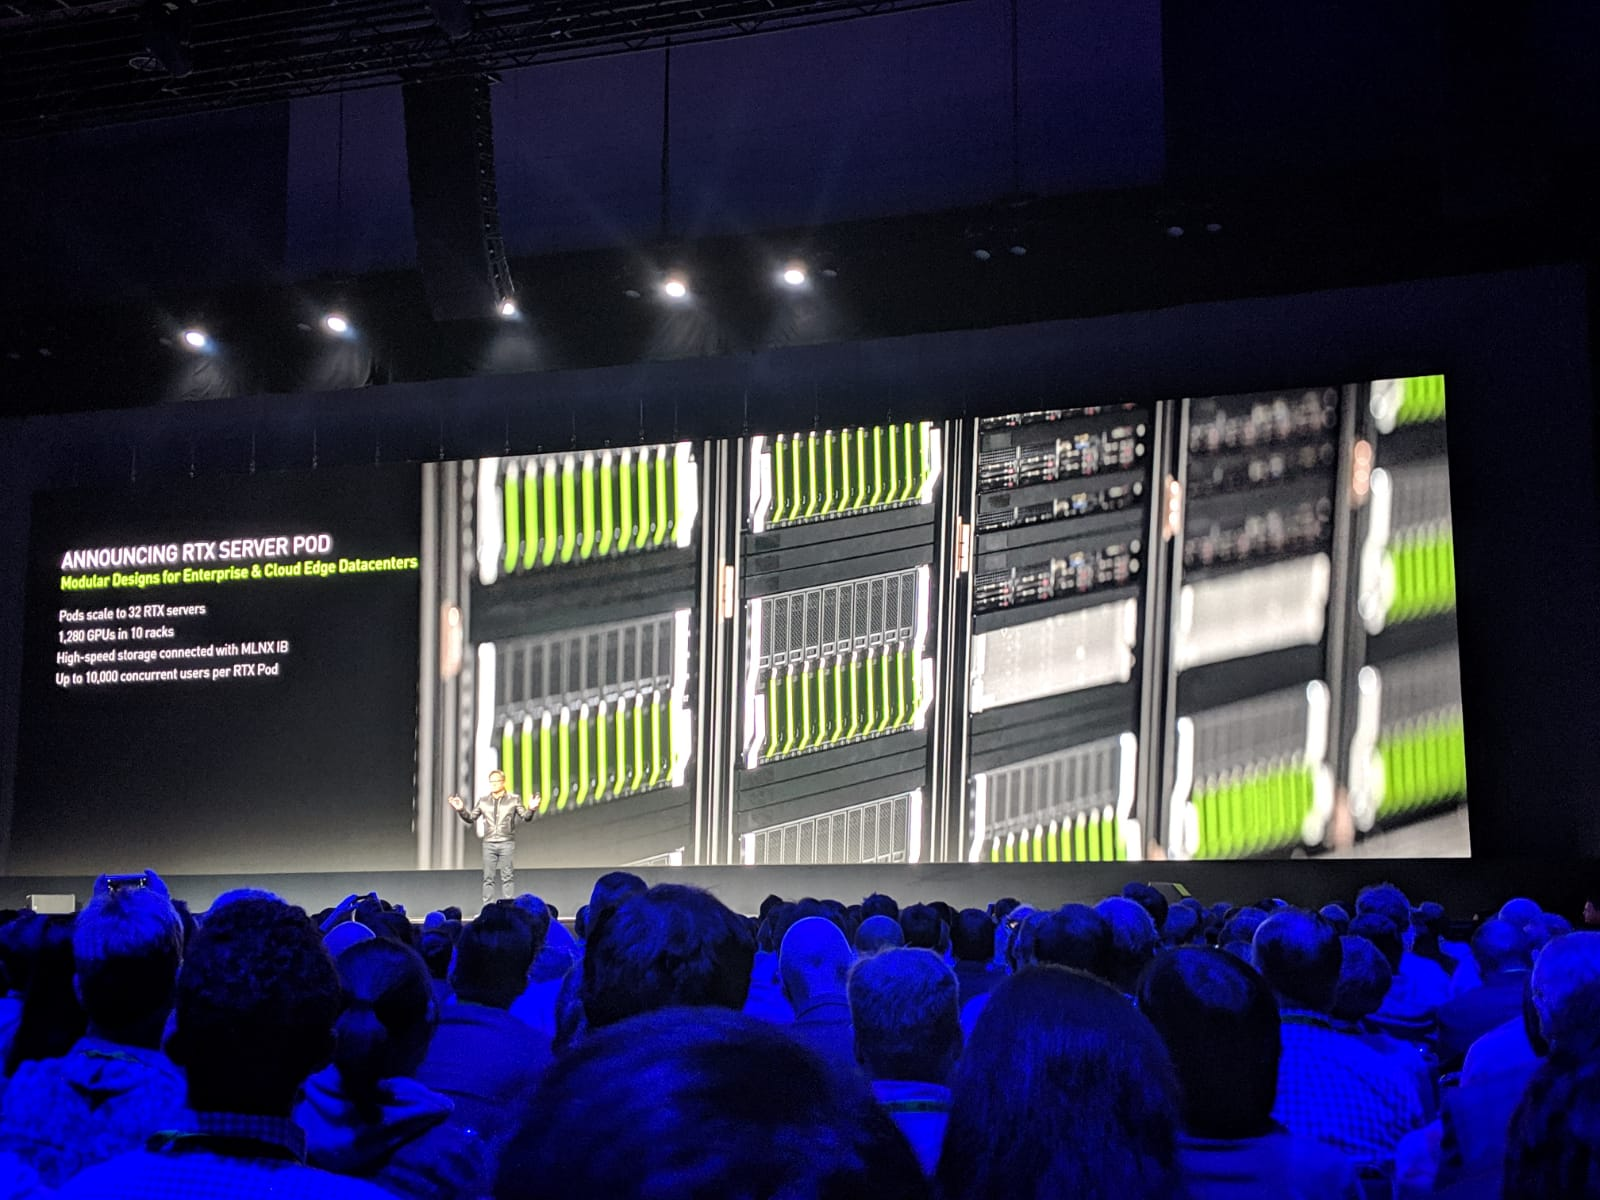 LIVE FROM GTC: NVIDIA Launches RTX Server at GTC 19